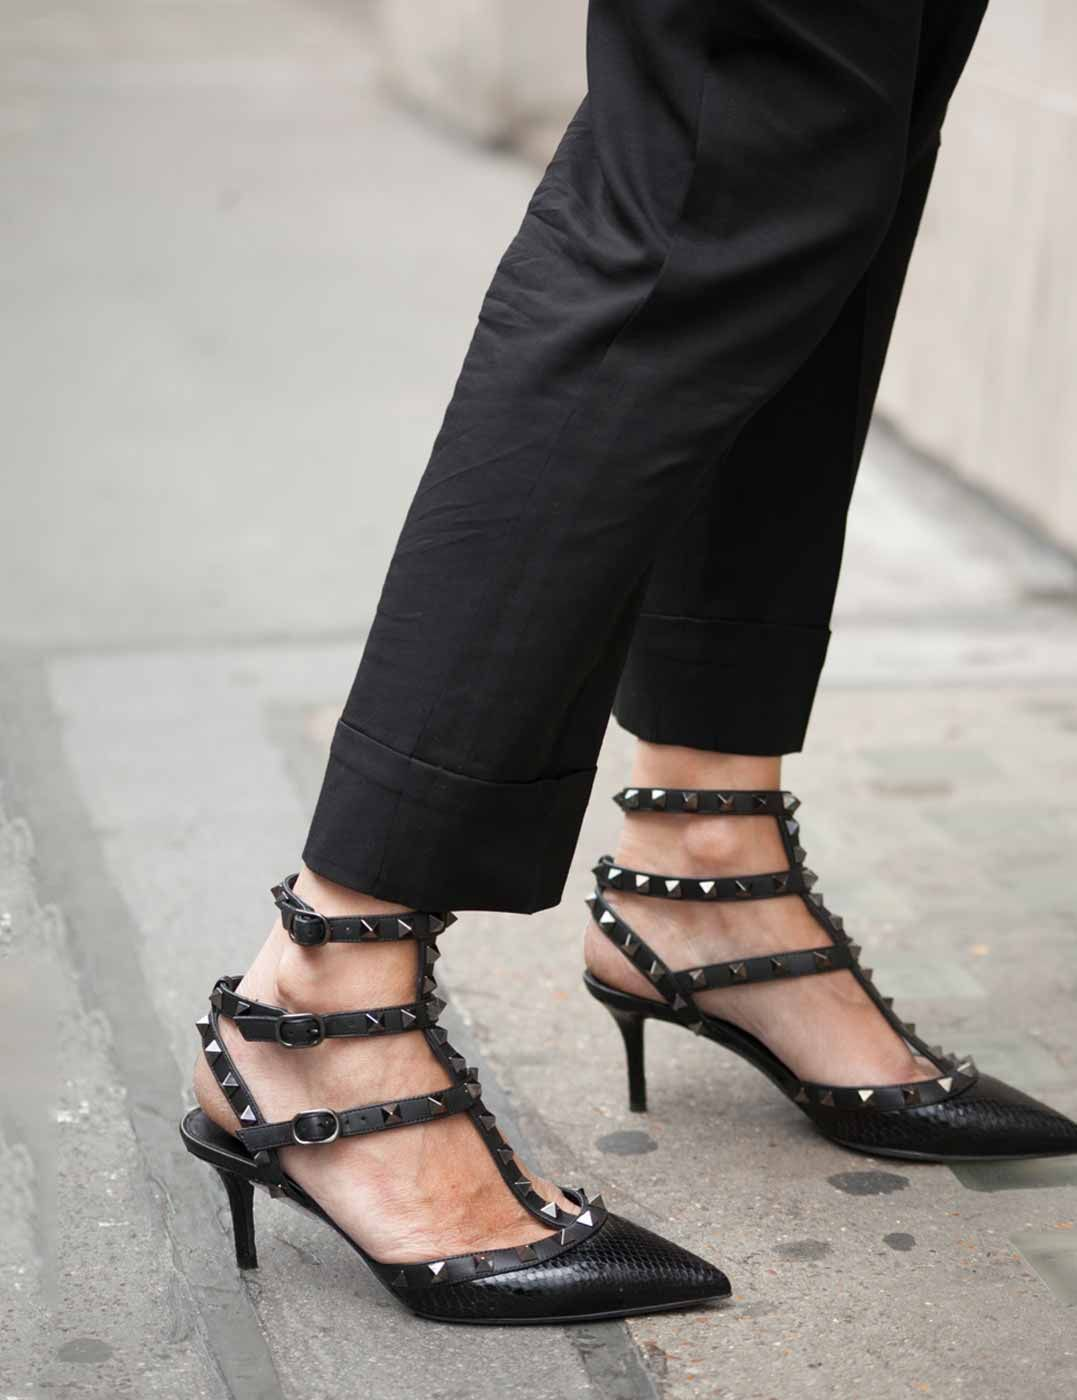 Valentino | Shoes | Pinterest